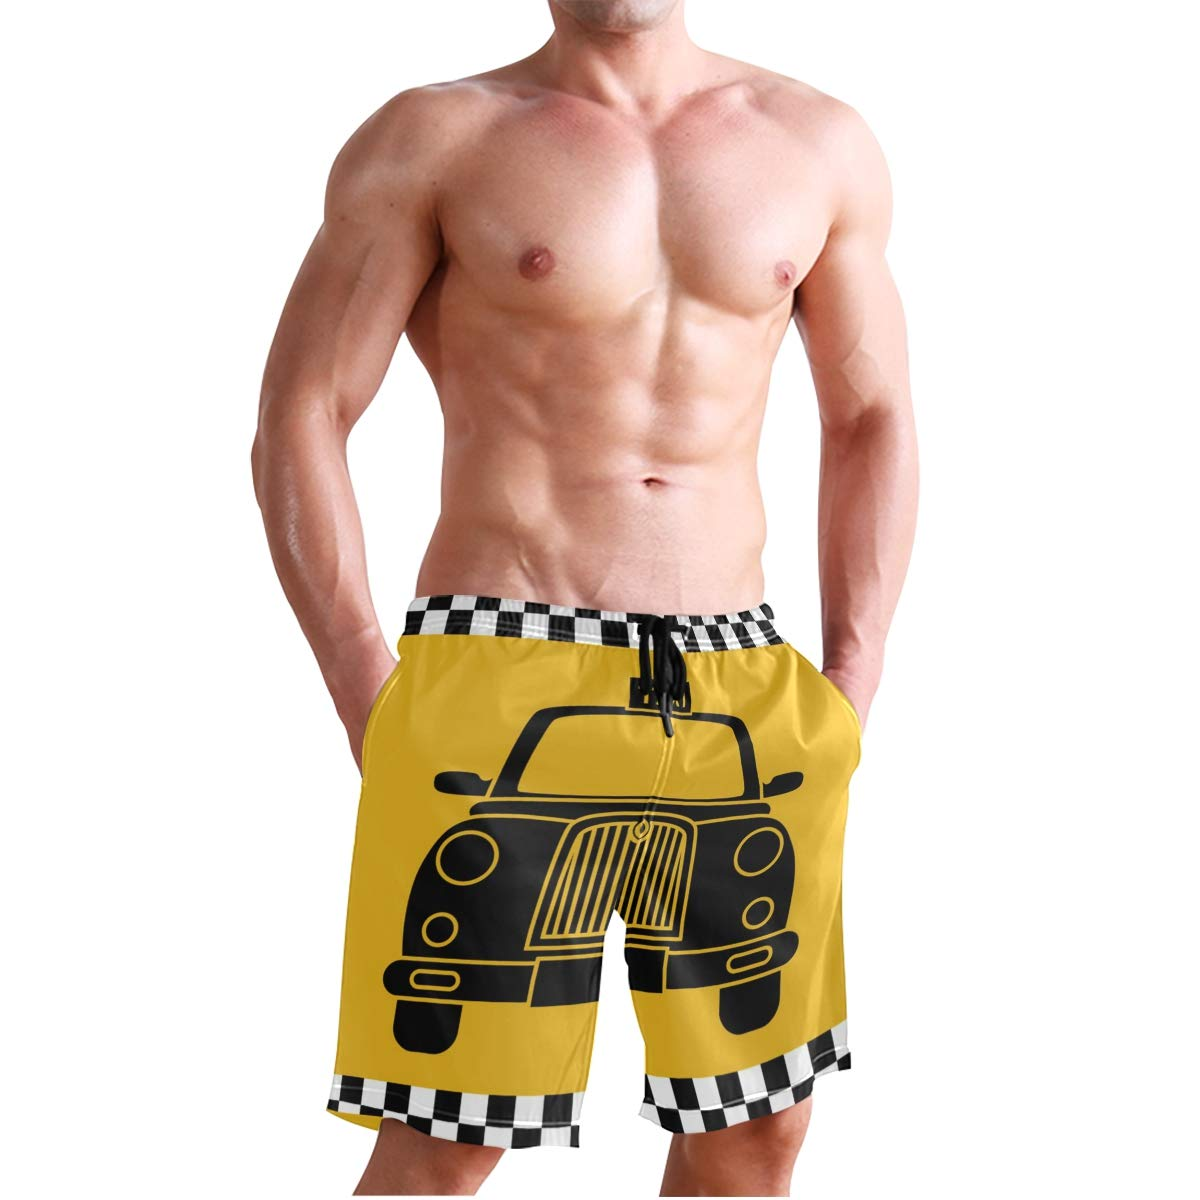 JERECY Mens Swim Trunks Retro Taxi Design Quick Dry Board Shorts with Drawstring and Pockets